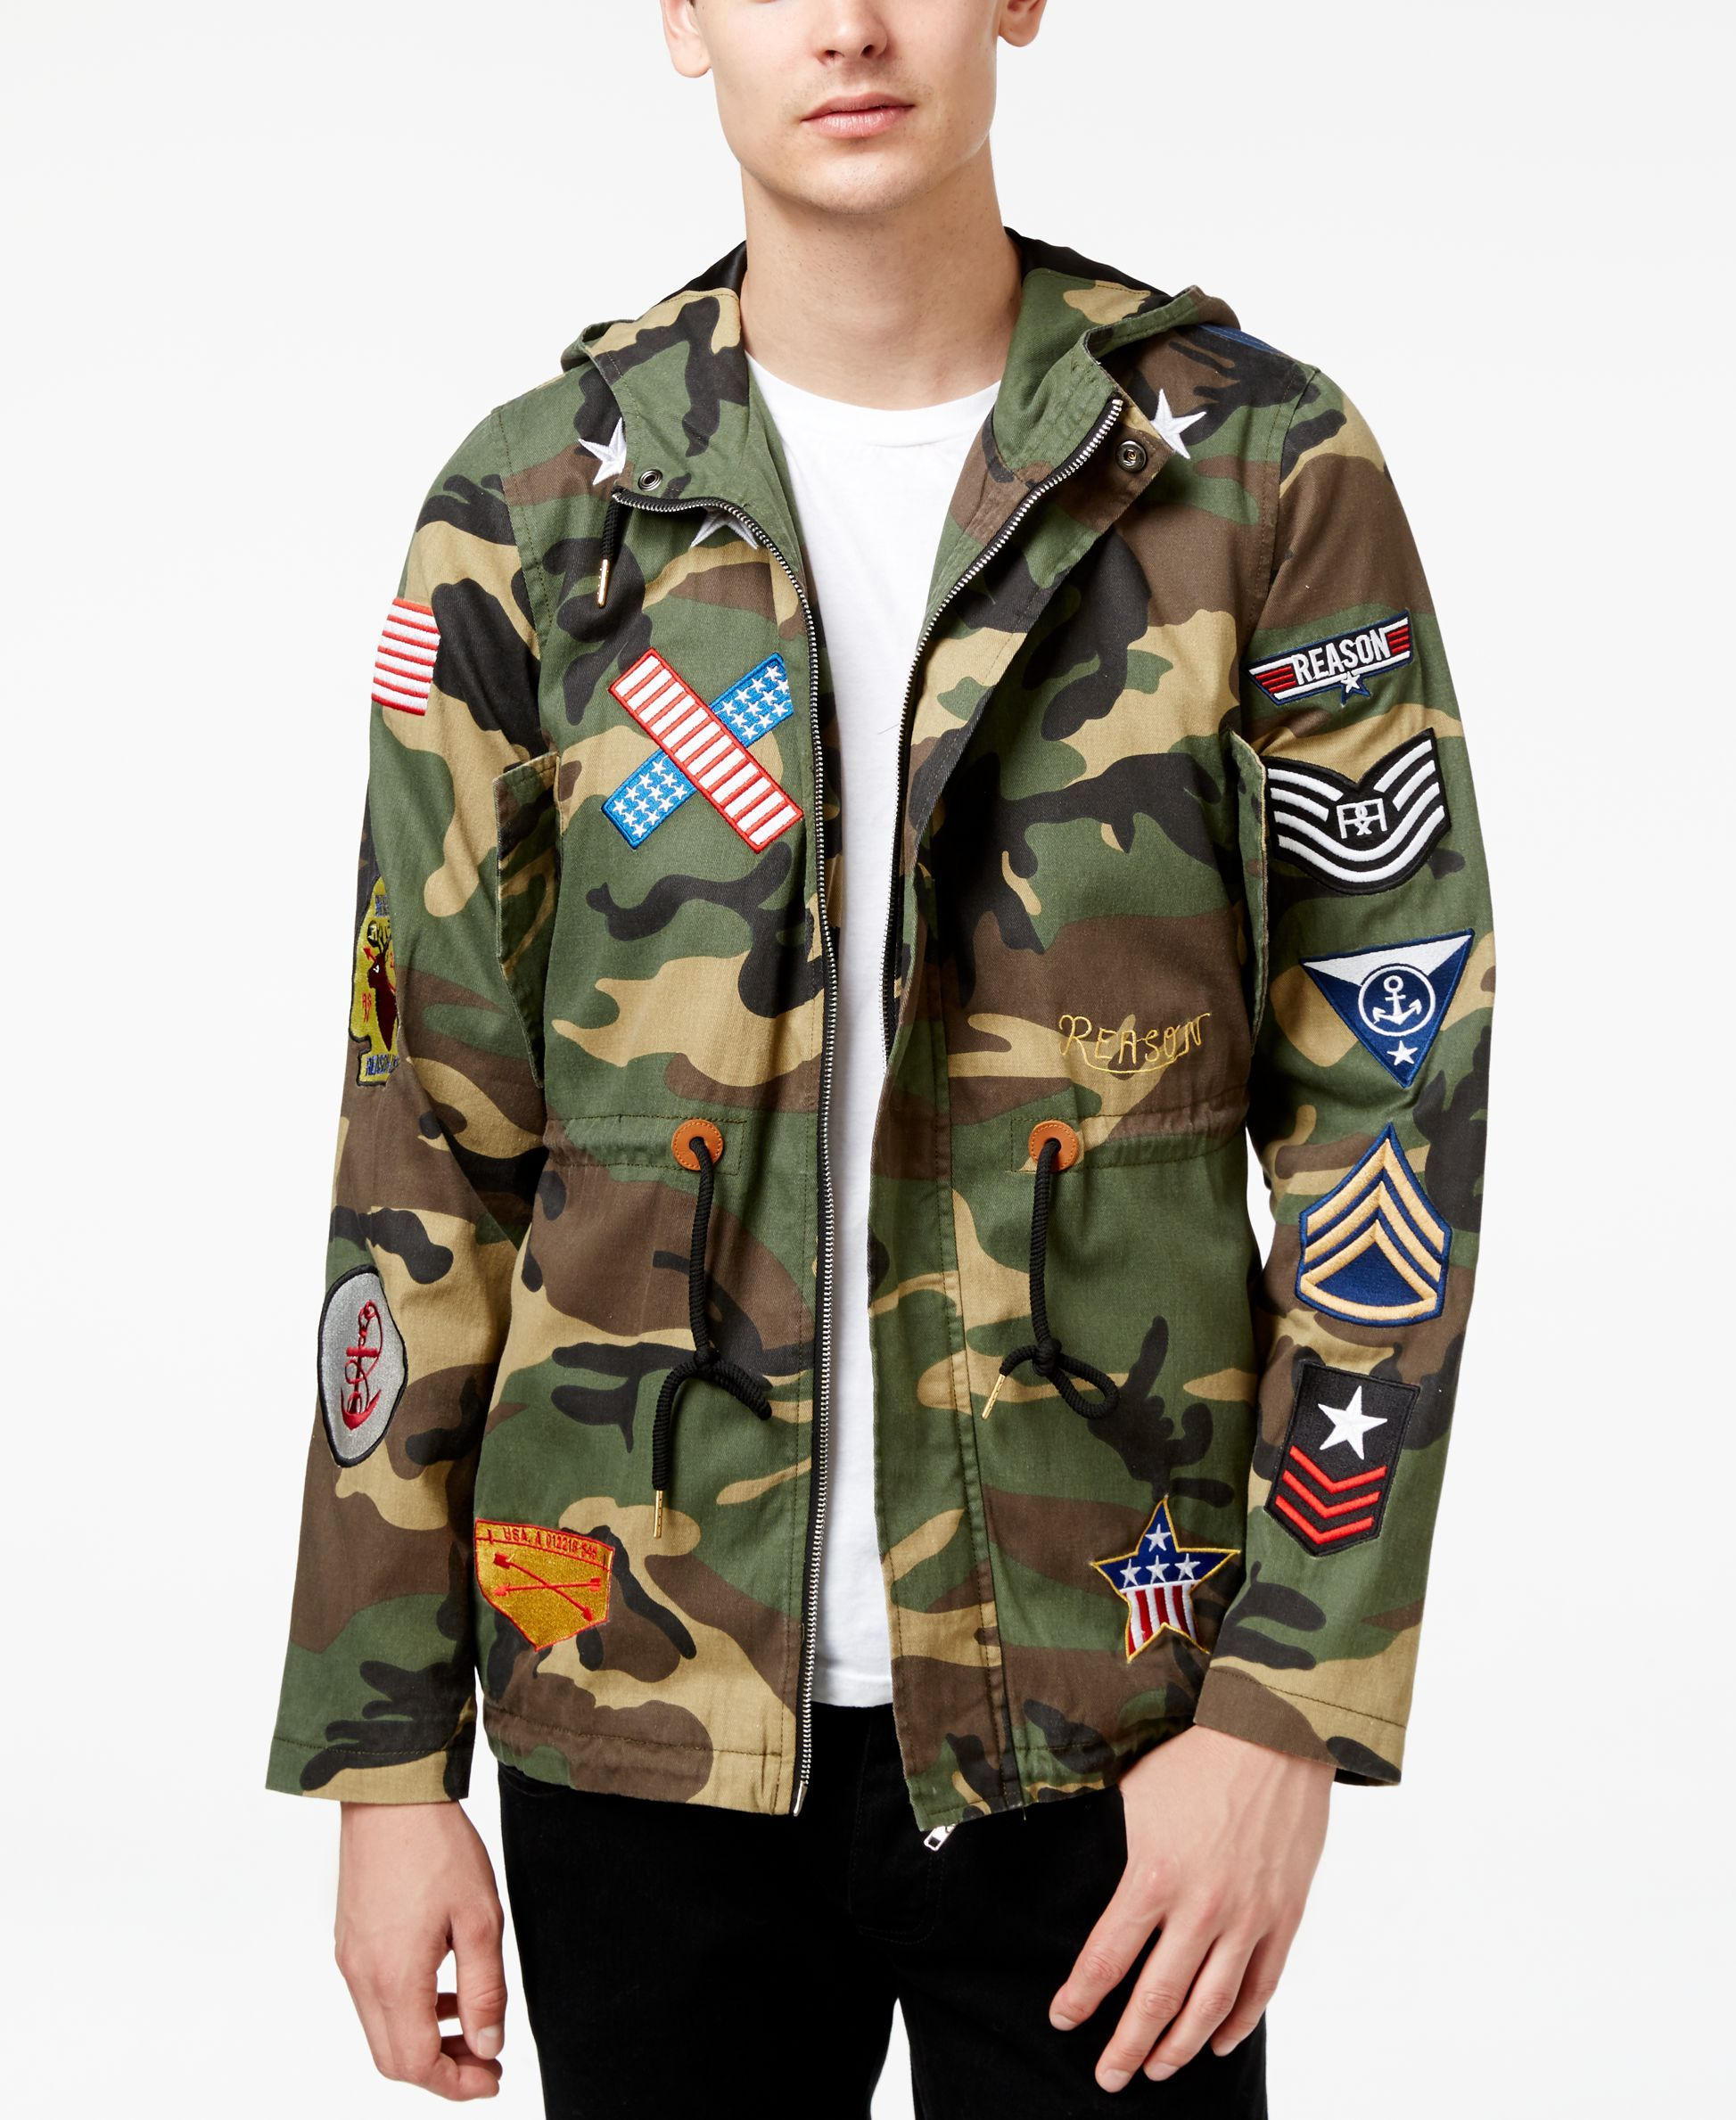 085c59cf0fd09 Reason Men's Banners Camo-Print Parka Jacket | GSM TAG Chapter ...